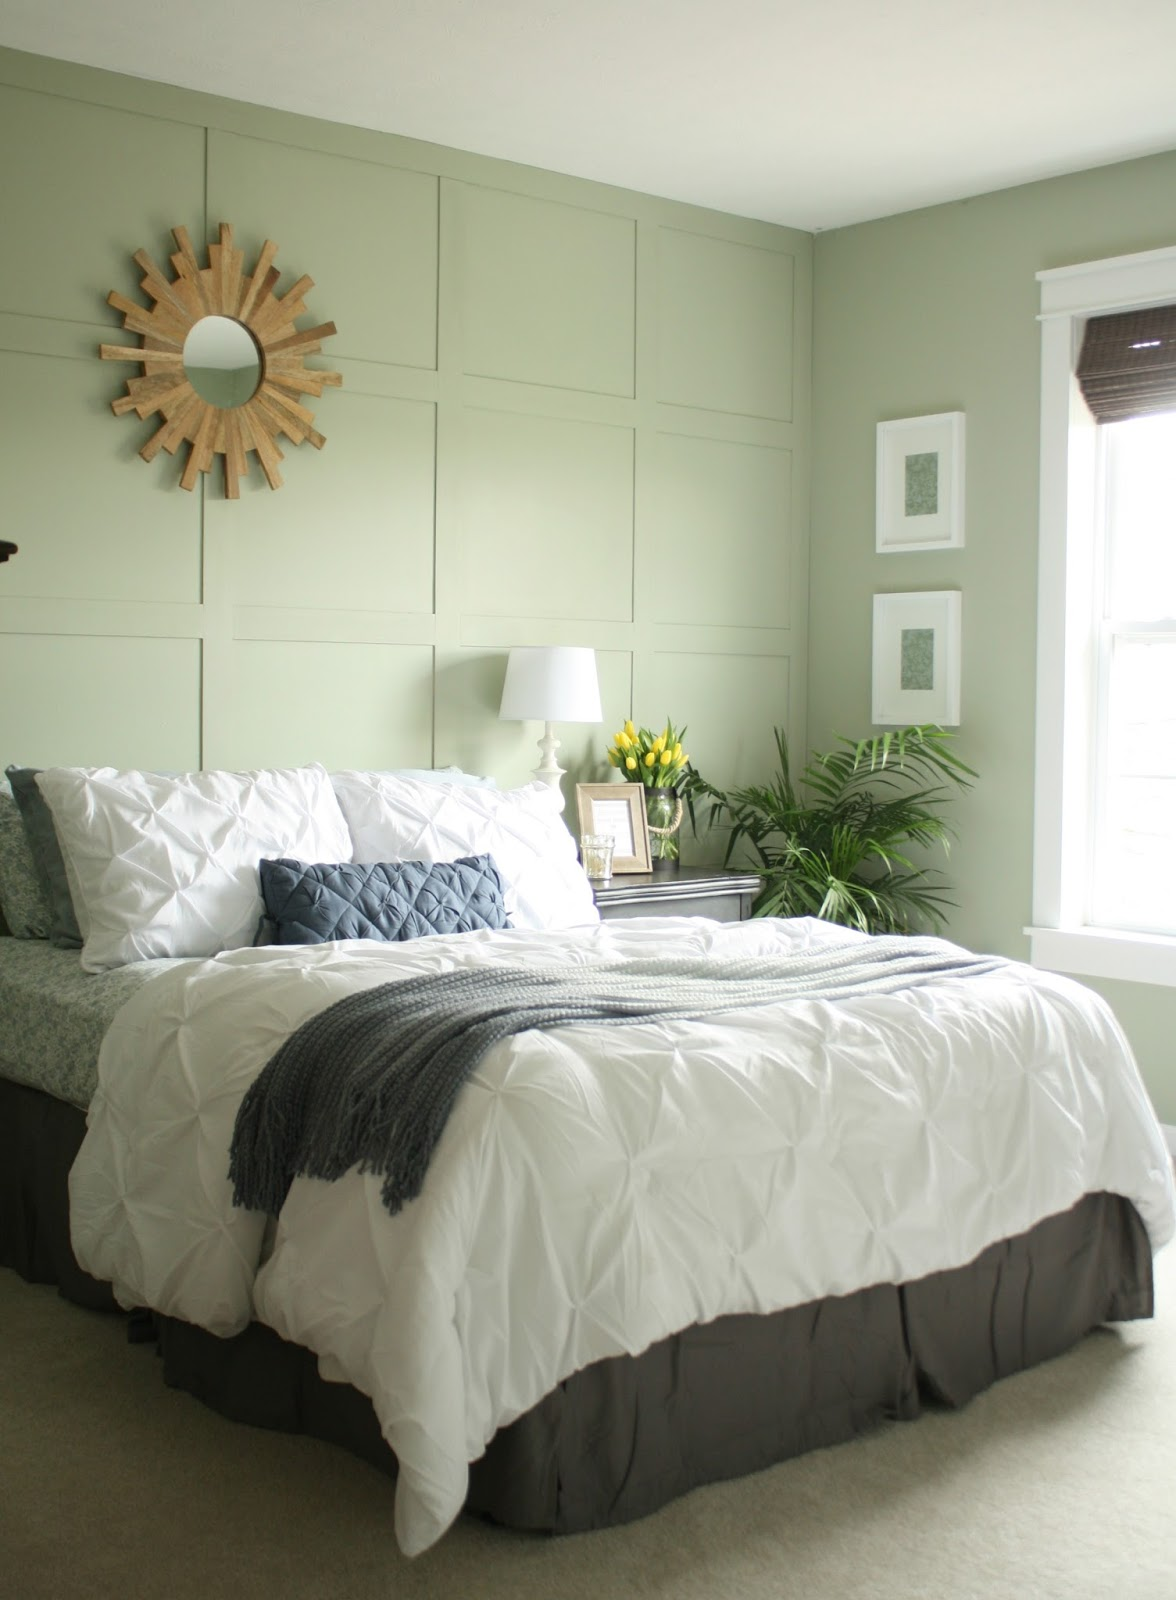 softened green paint color